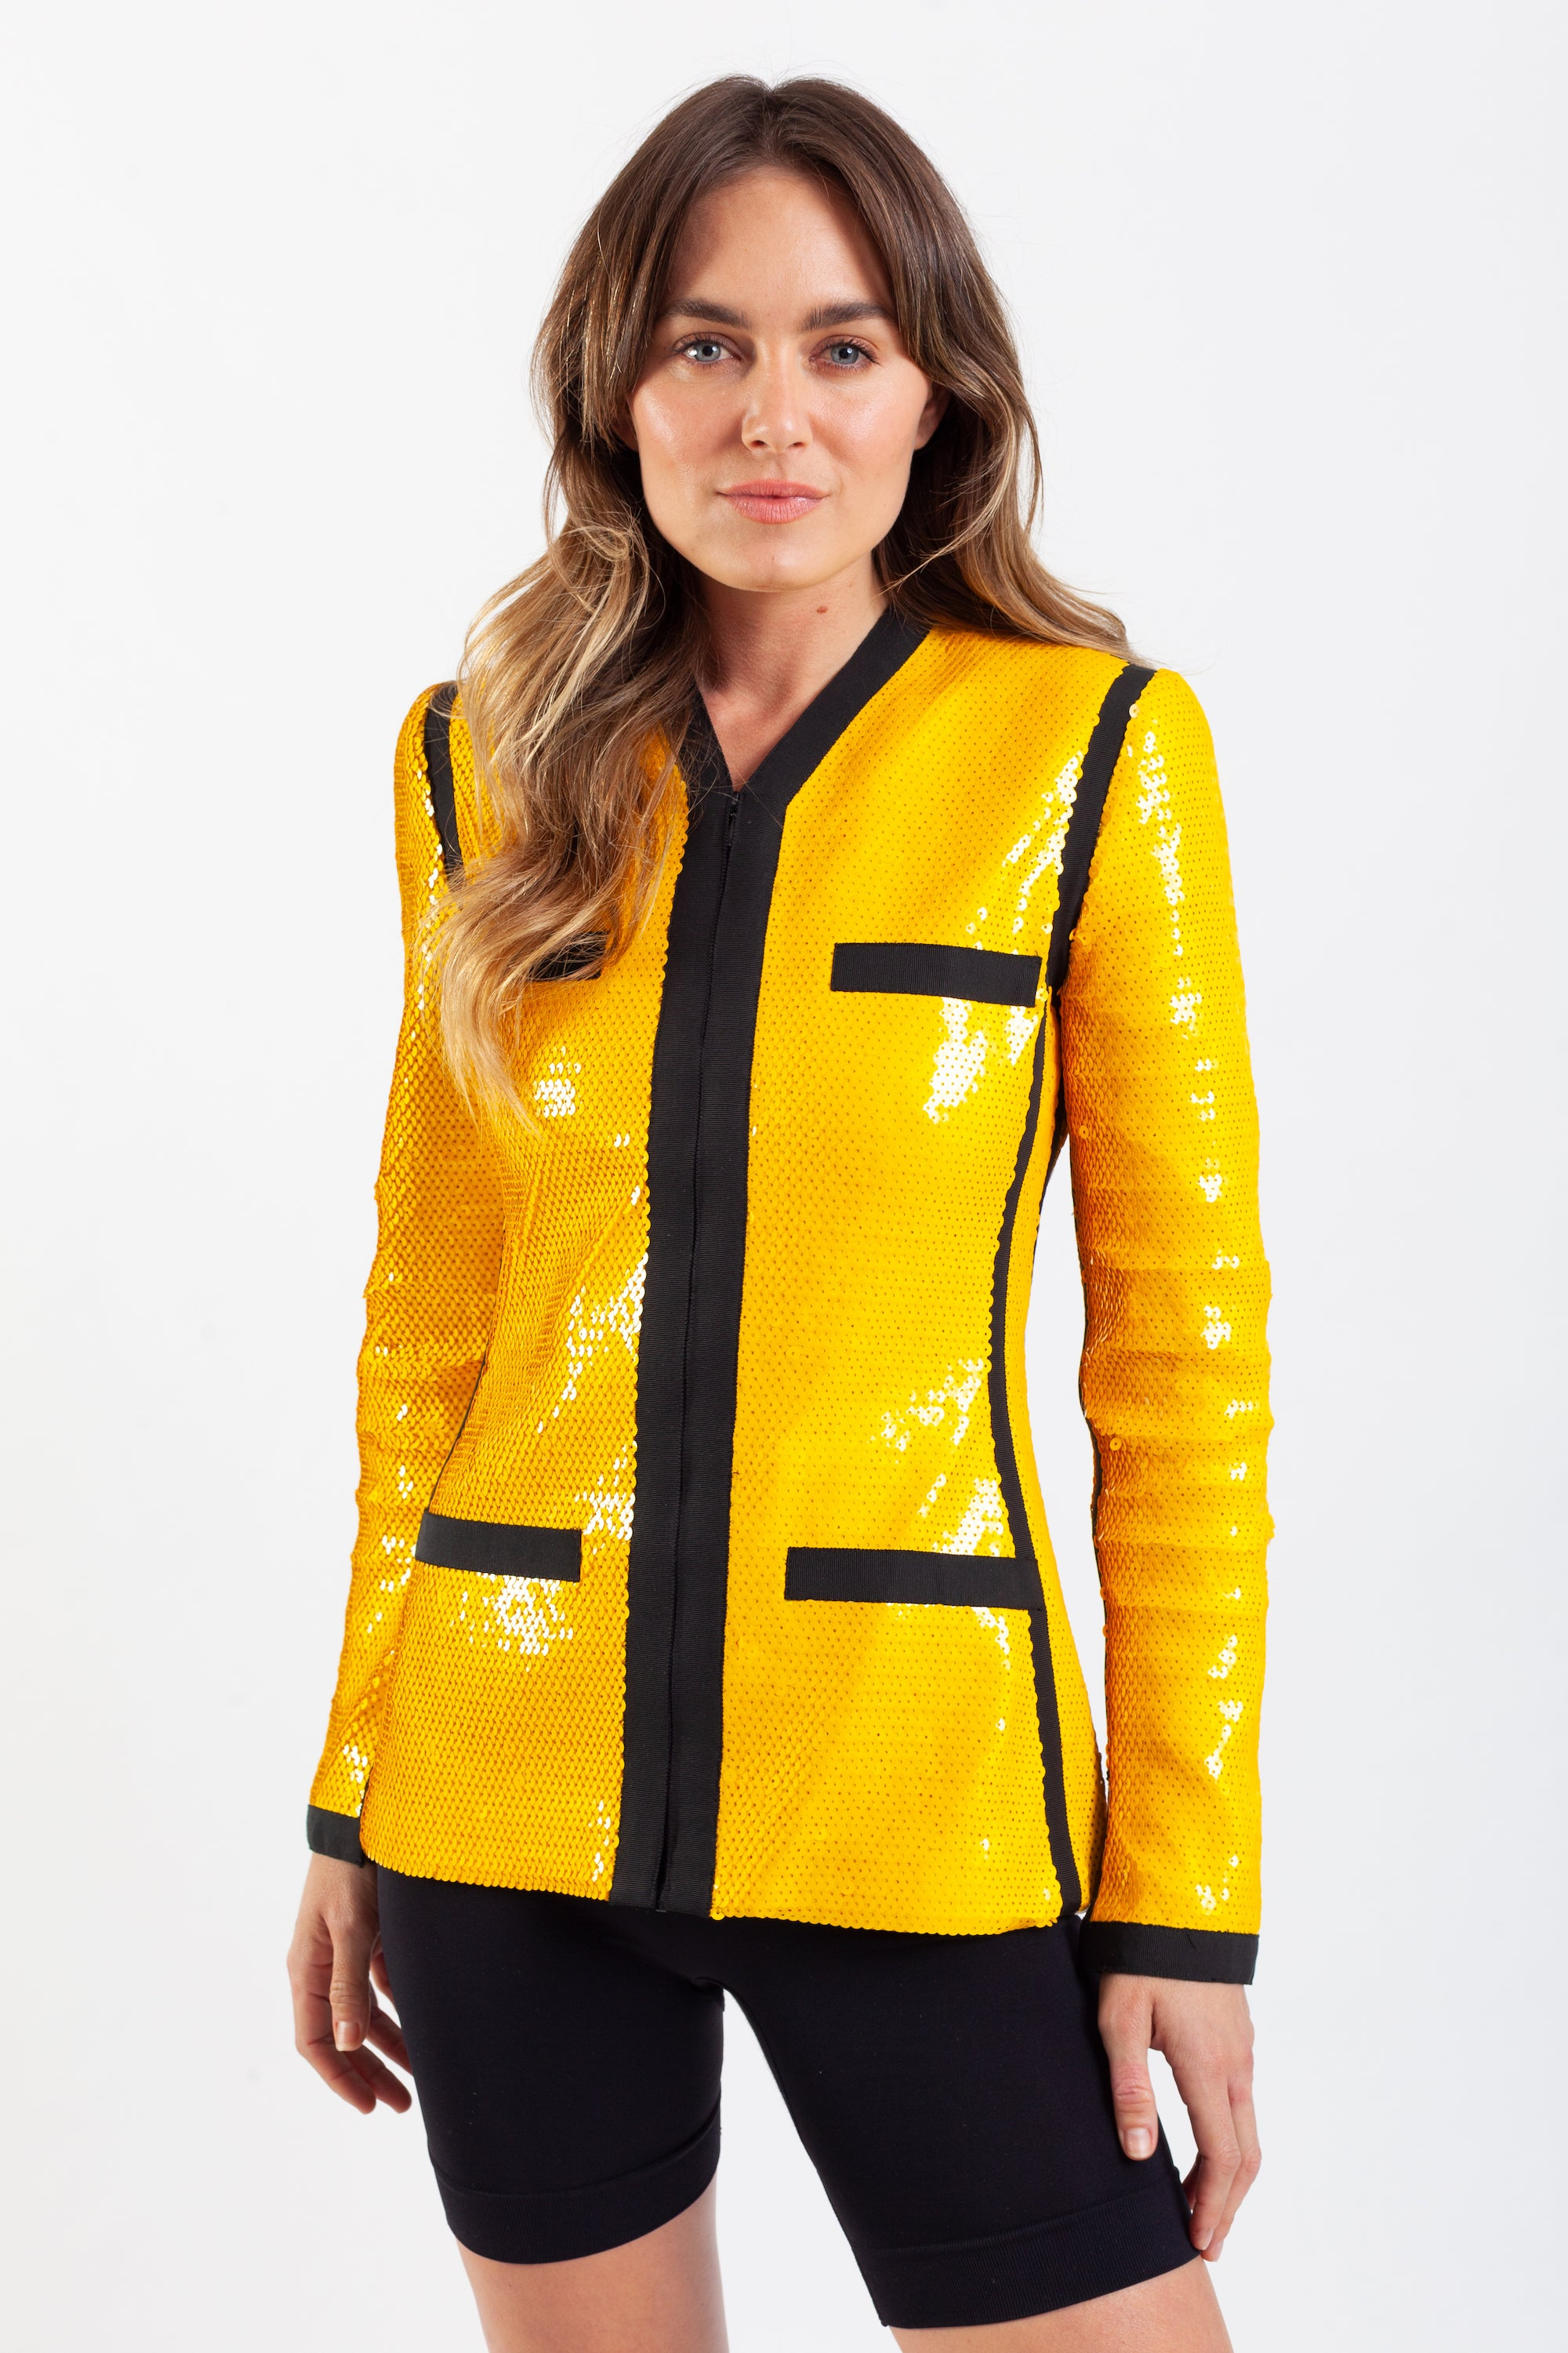 Chanel <br> S/S 1991 iconic 'City Surfer' sequin jacket